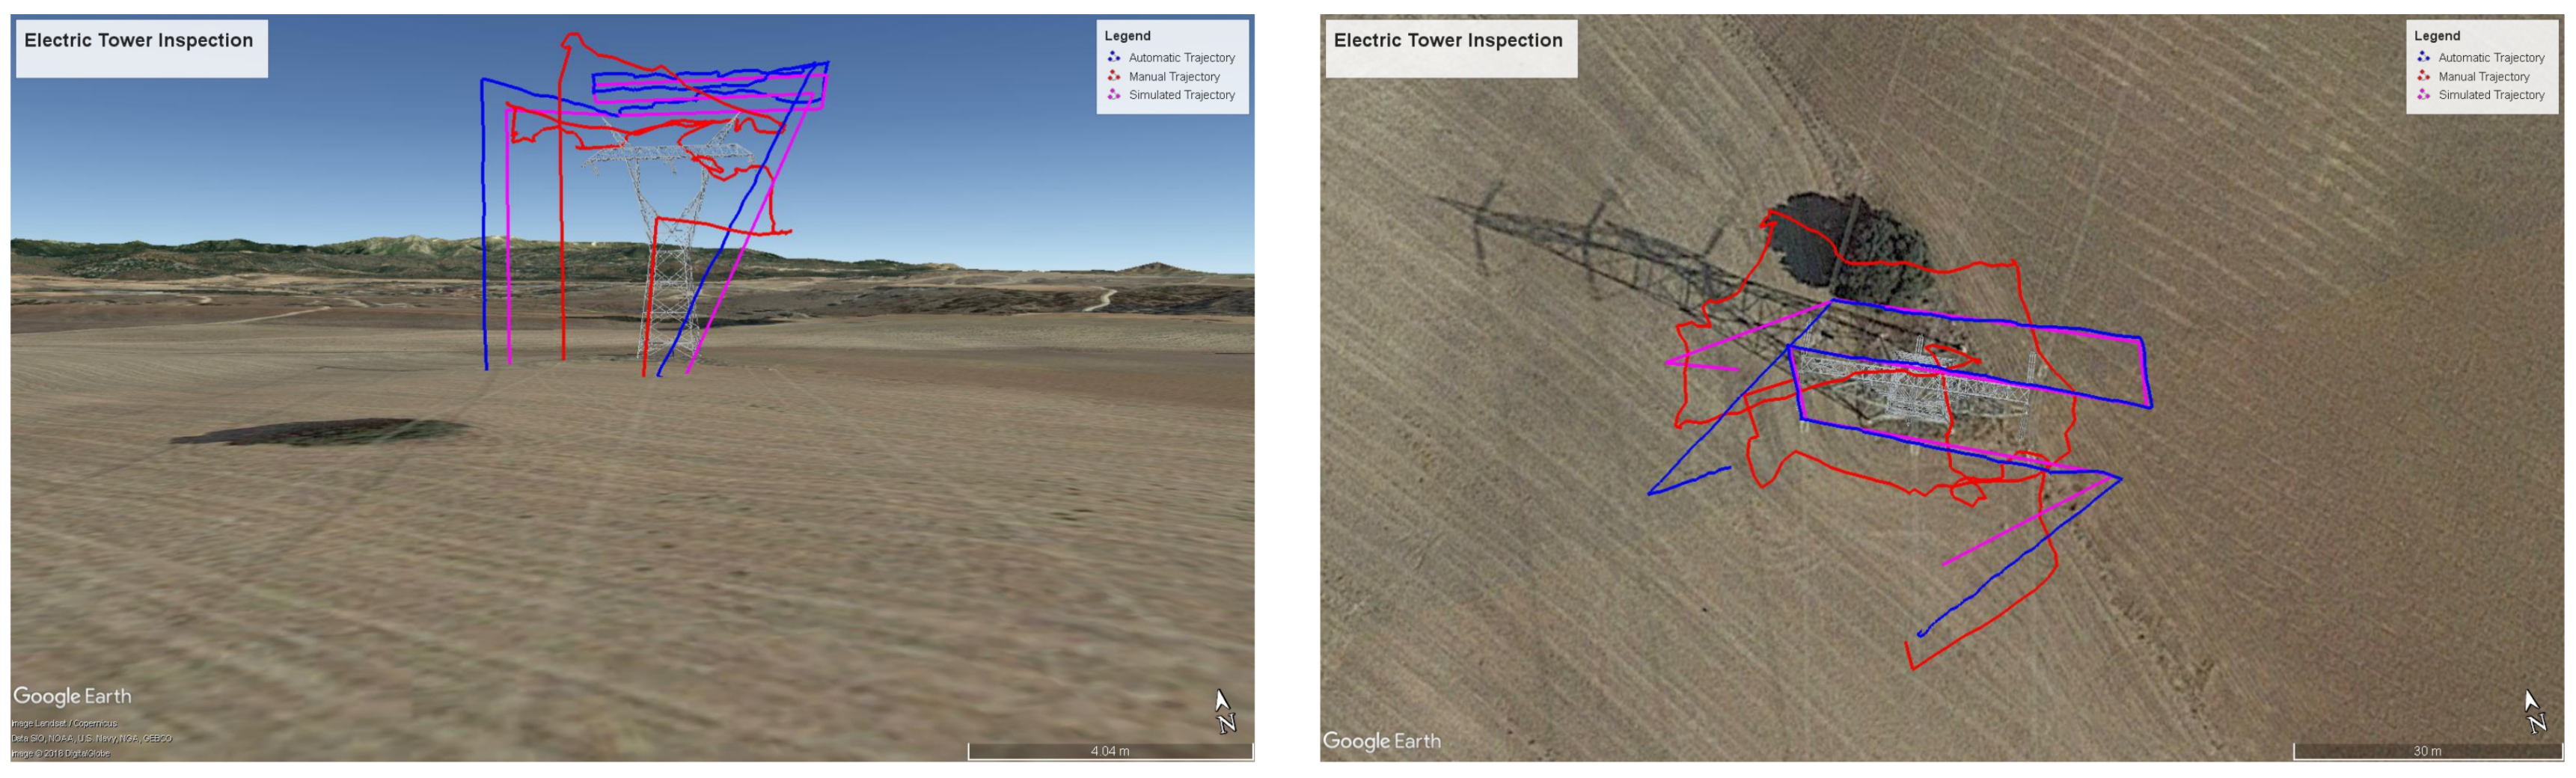 Sensors | Free Full-Text | Drone Mission Definition and